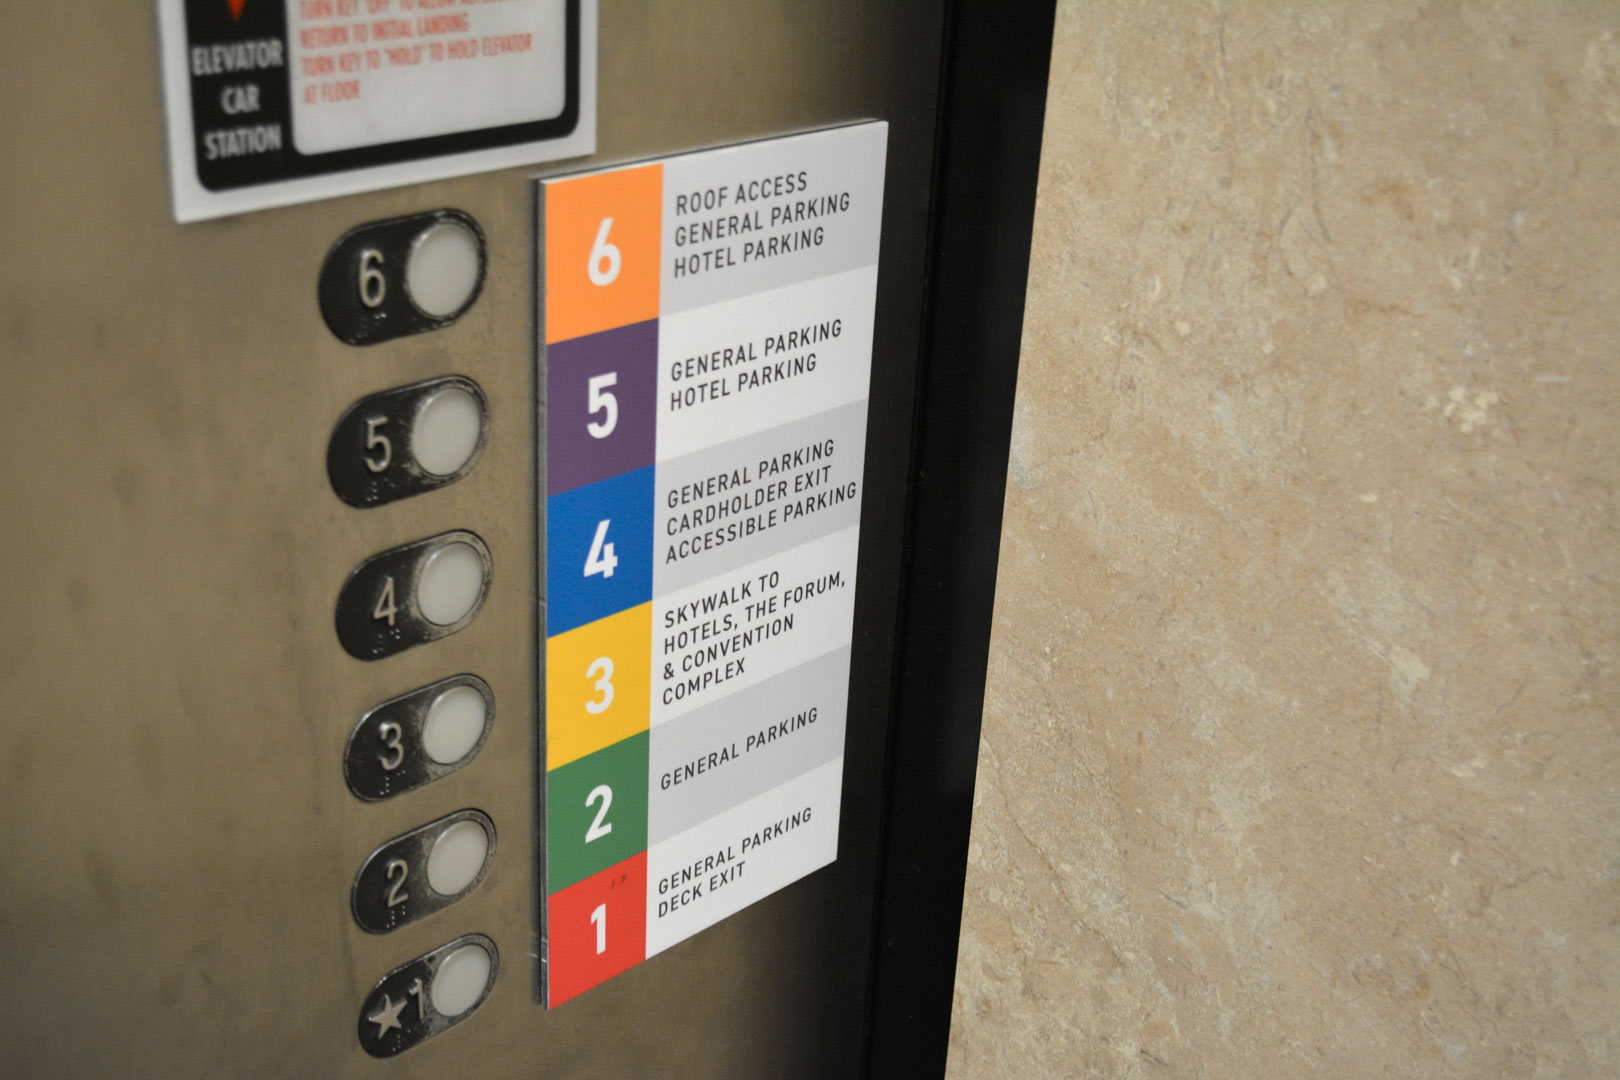 Level directory sign next to elevator level buttons in the 22nd street BJCC parking deck